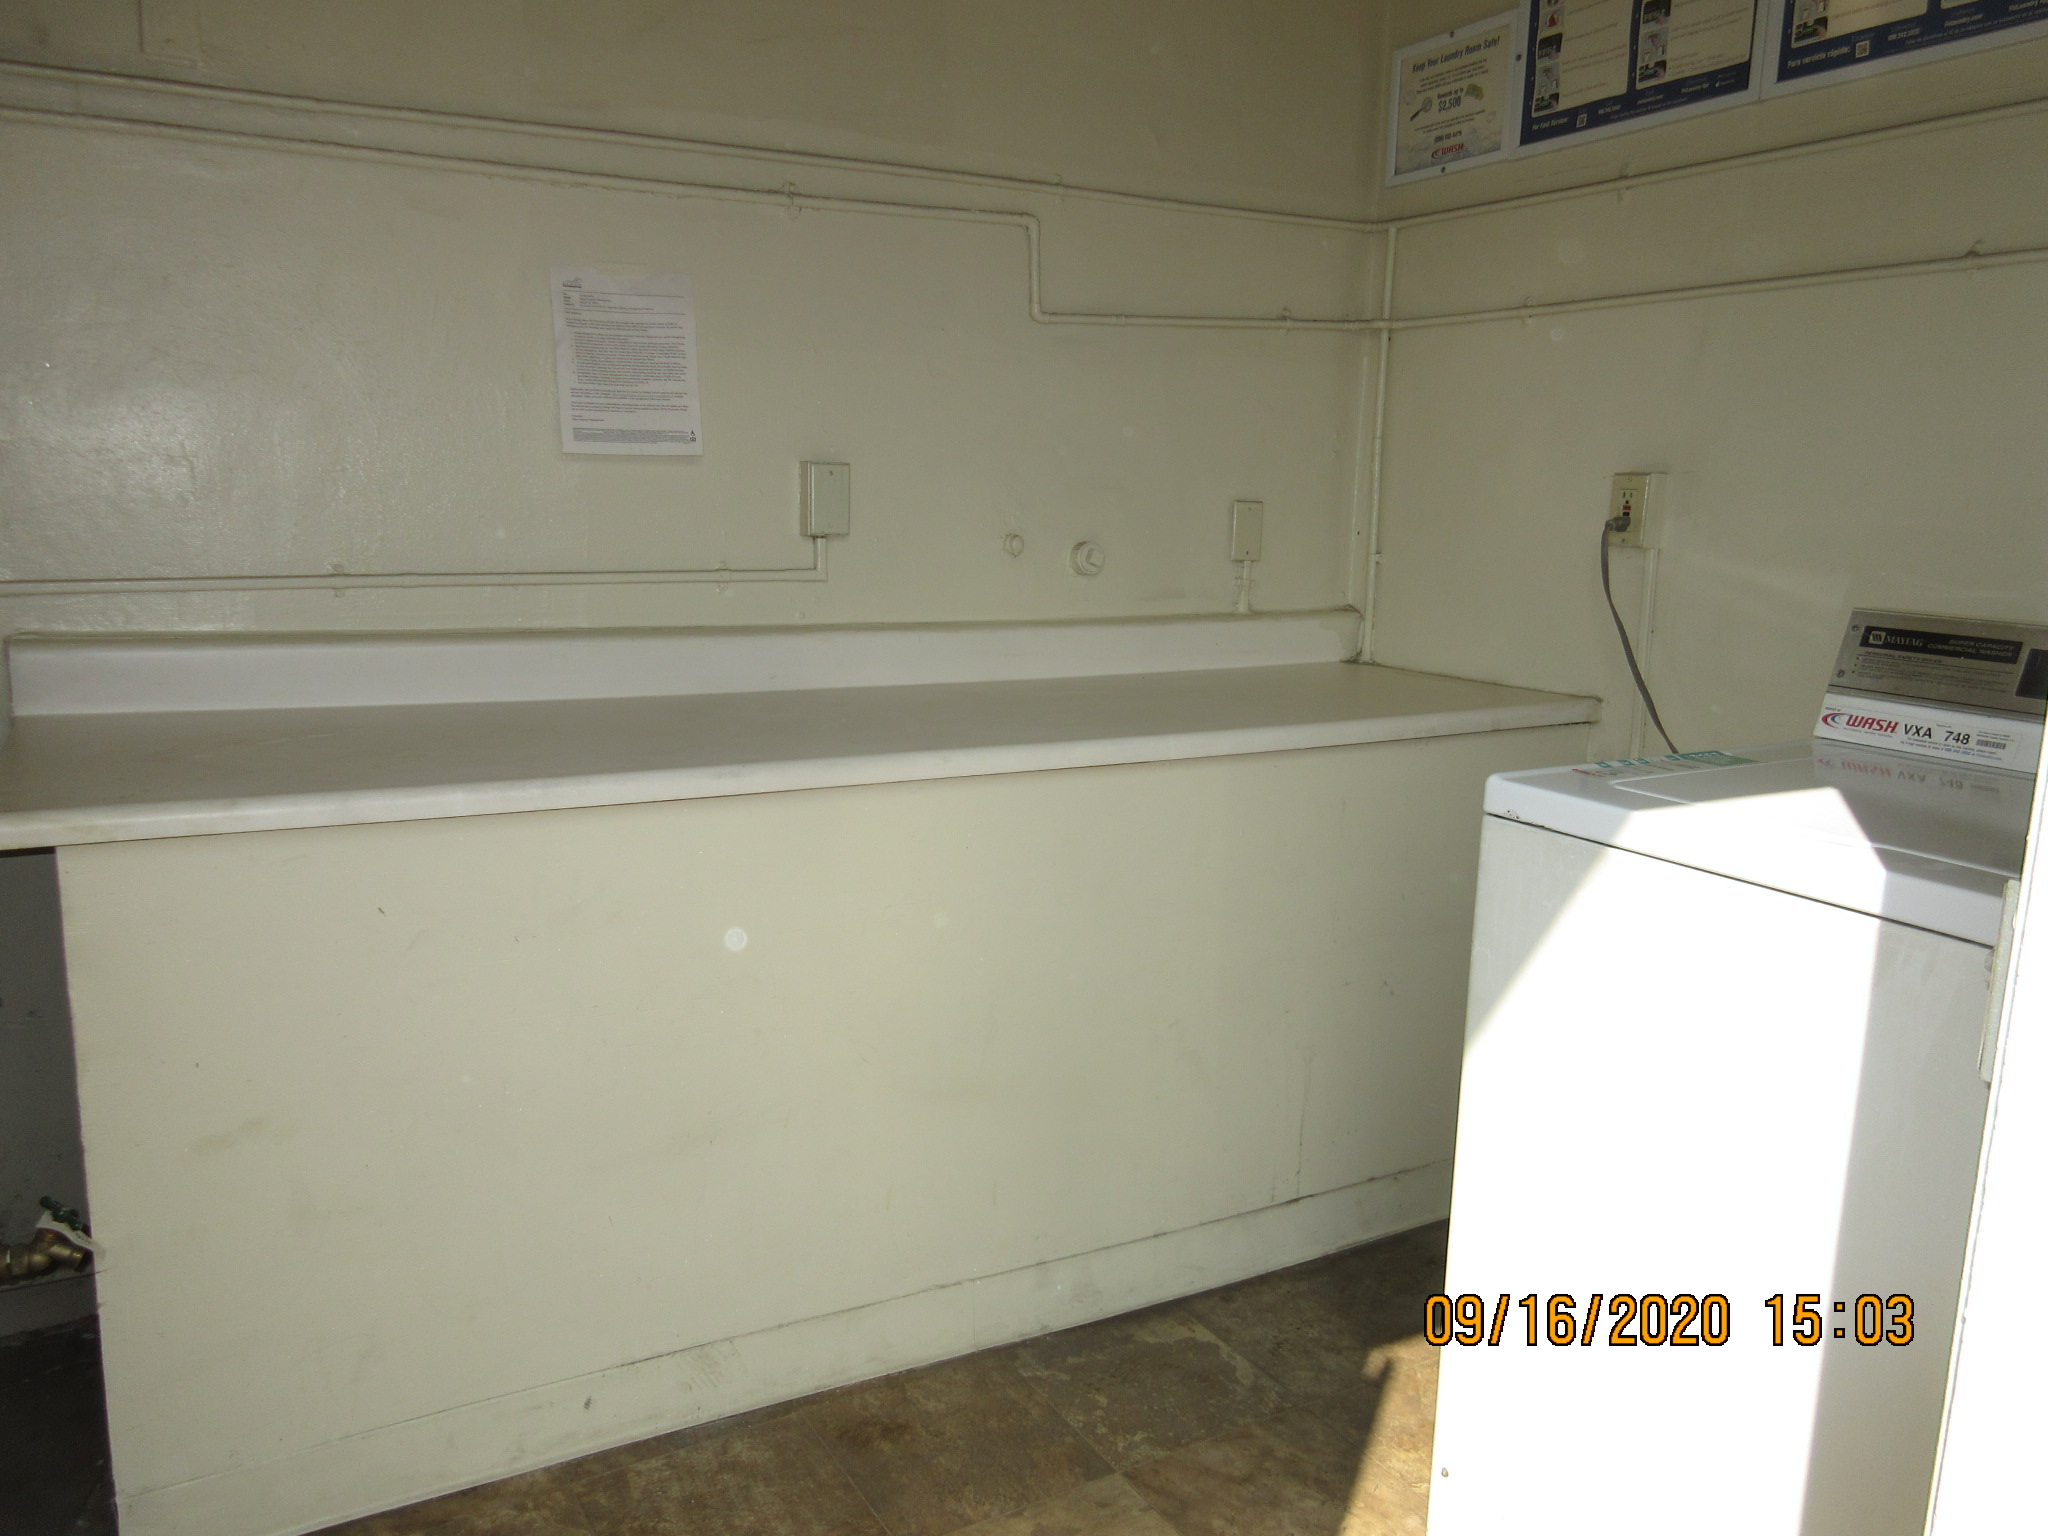 View of a laundry room.